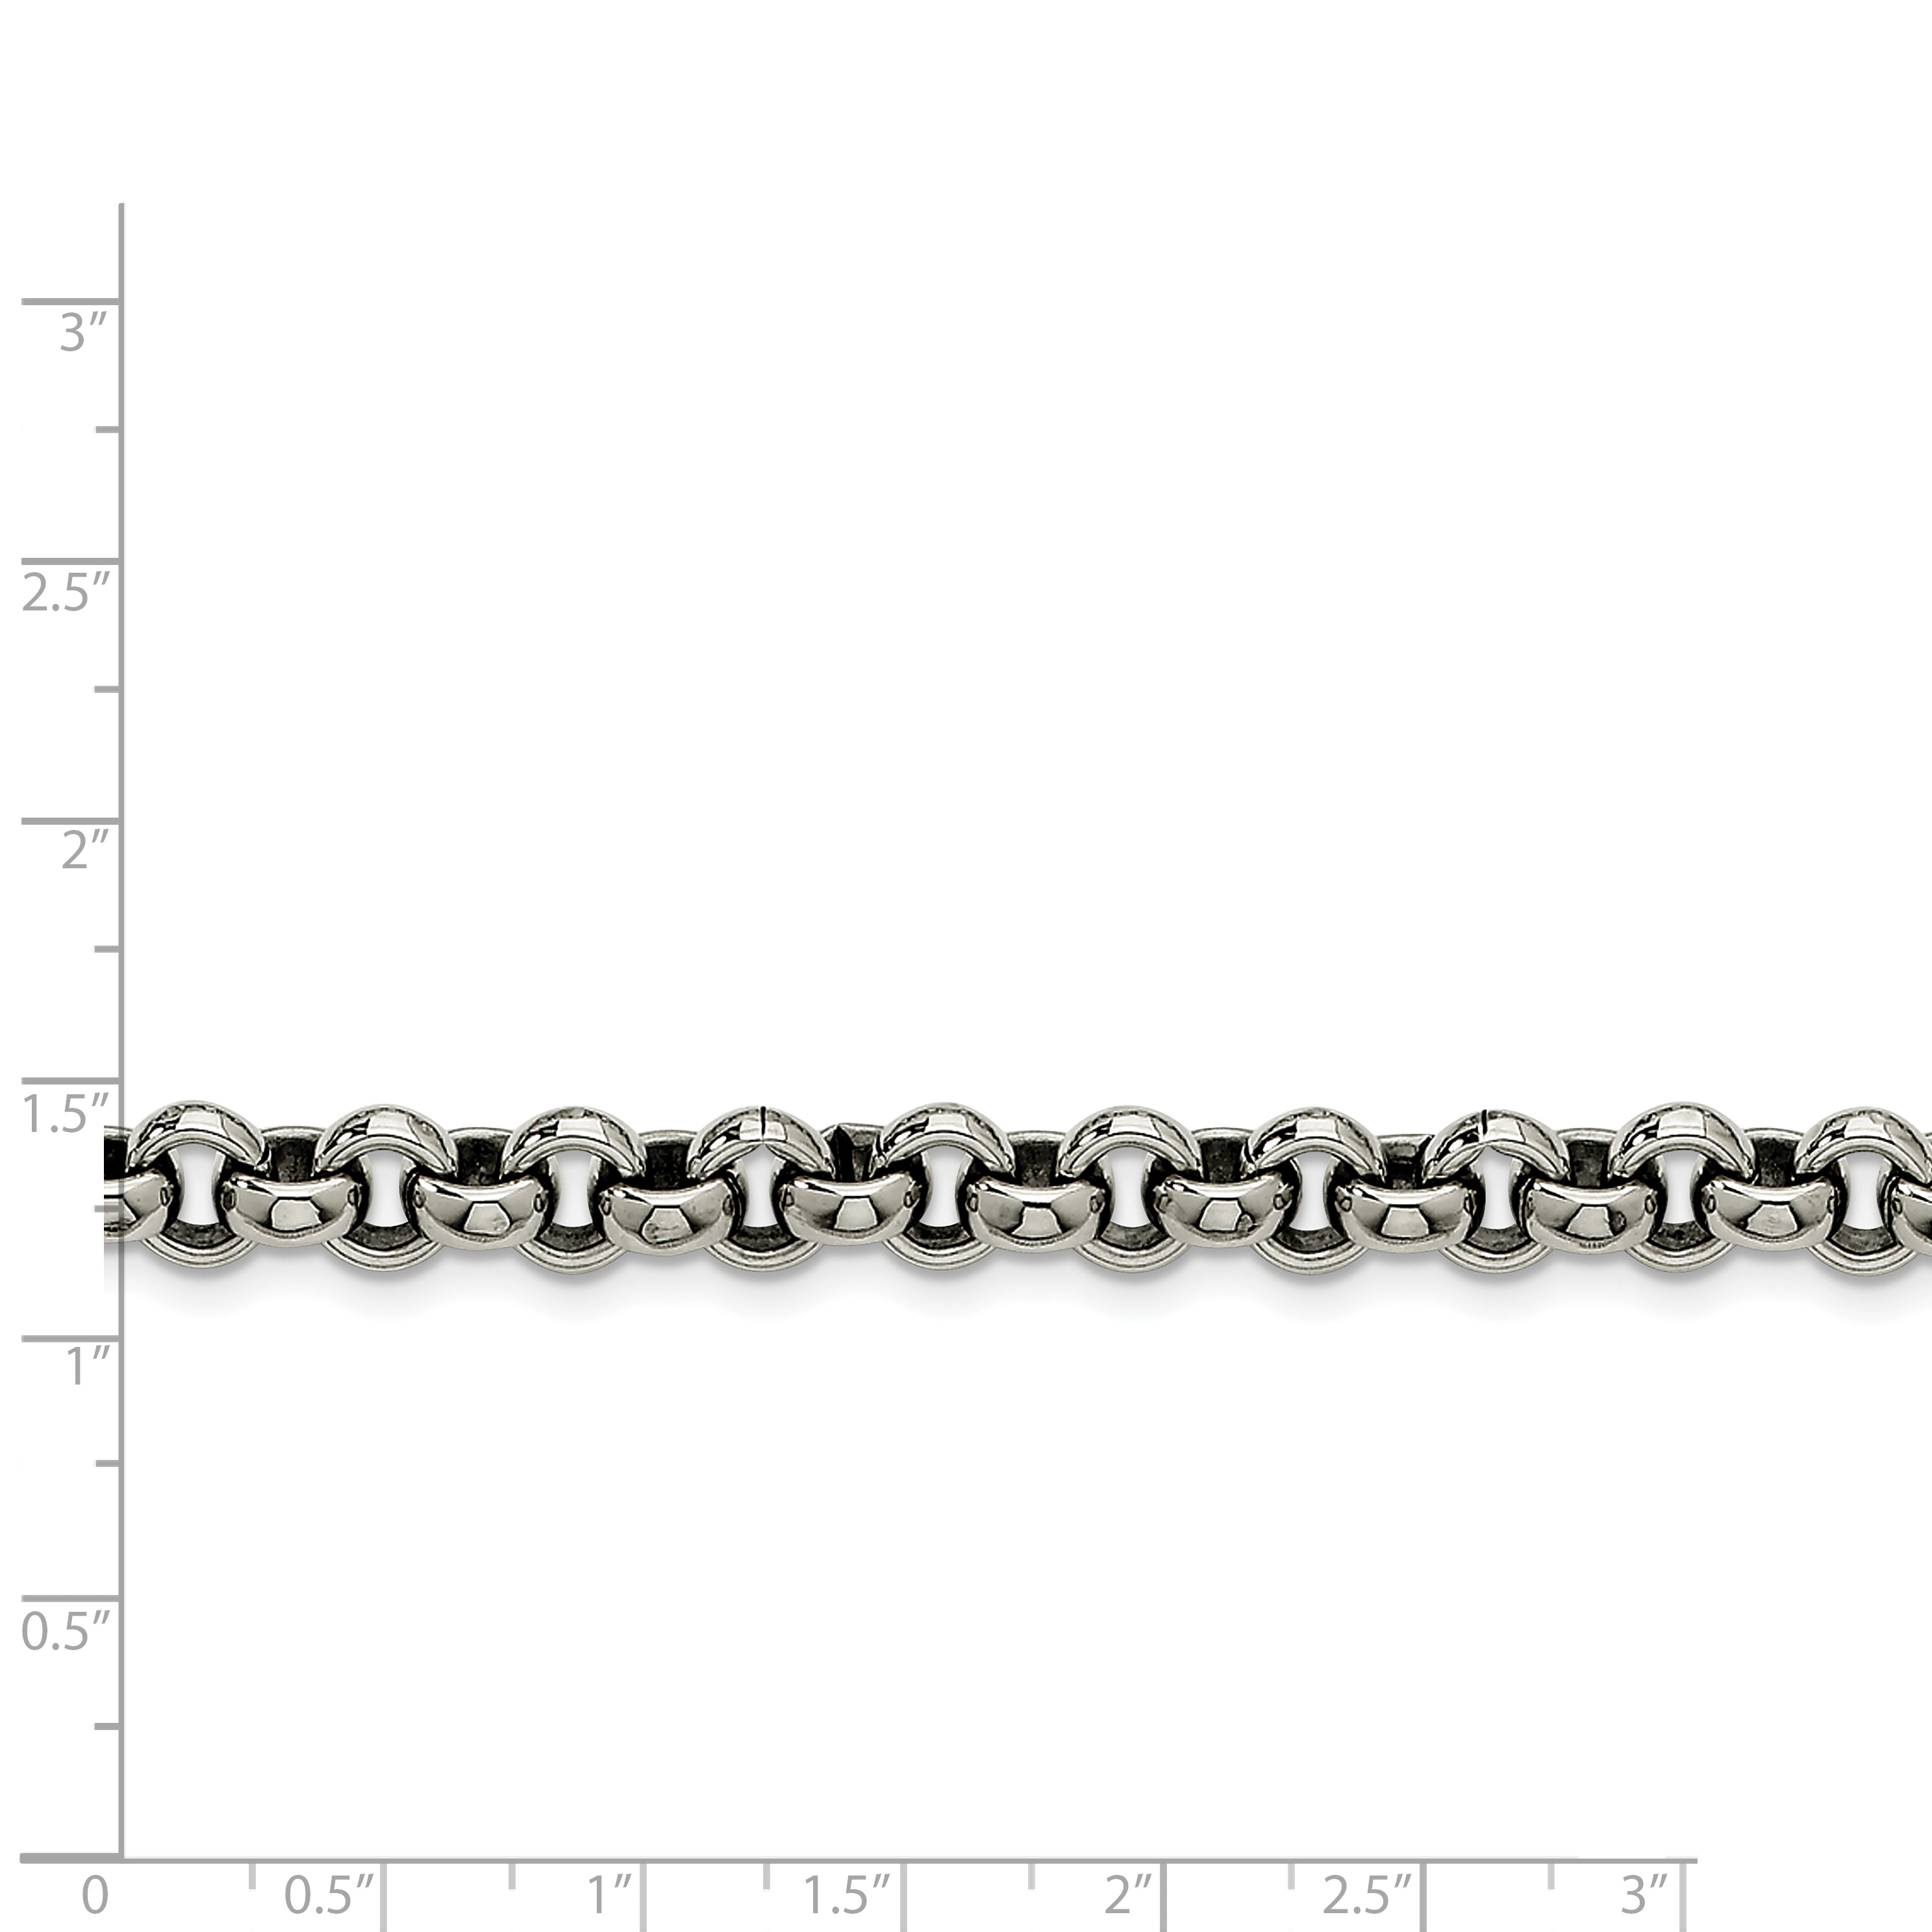 Stainless Steel 8mm Rolo Bracelet Chain 7.75 Inch Fashion Jewelry Gifts For Women For Her - image 2 of 3